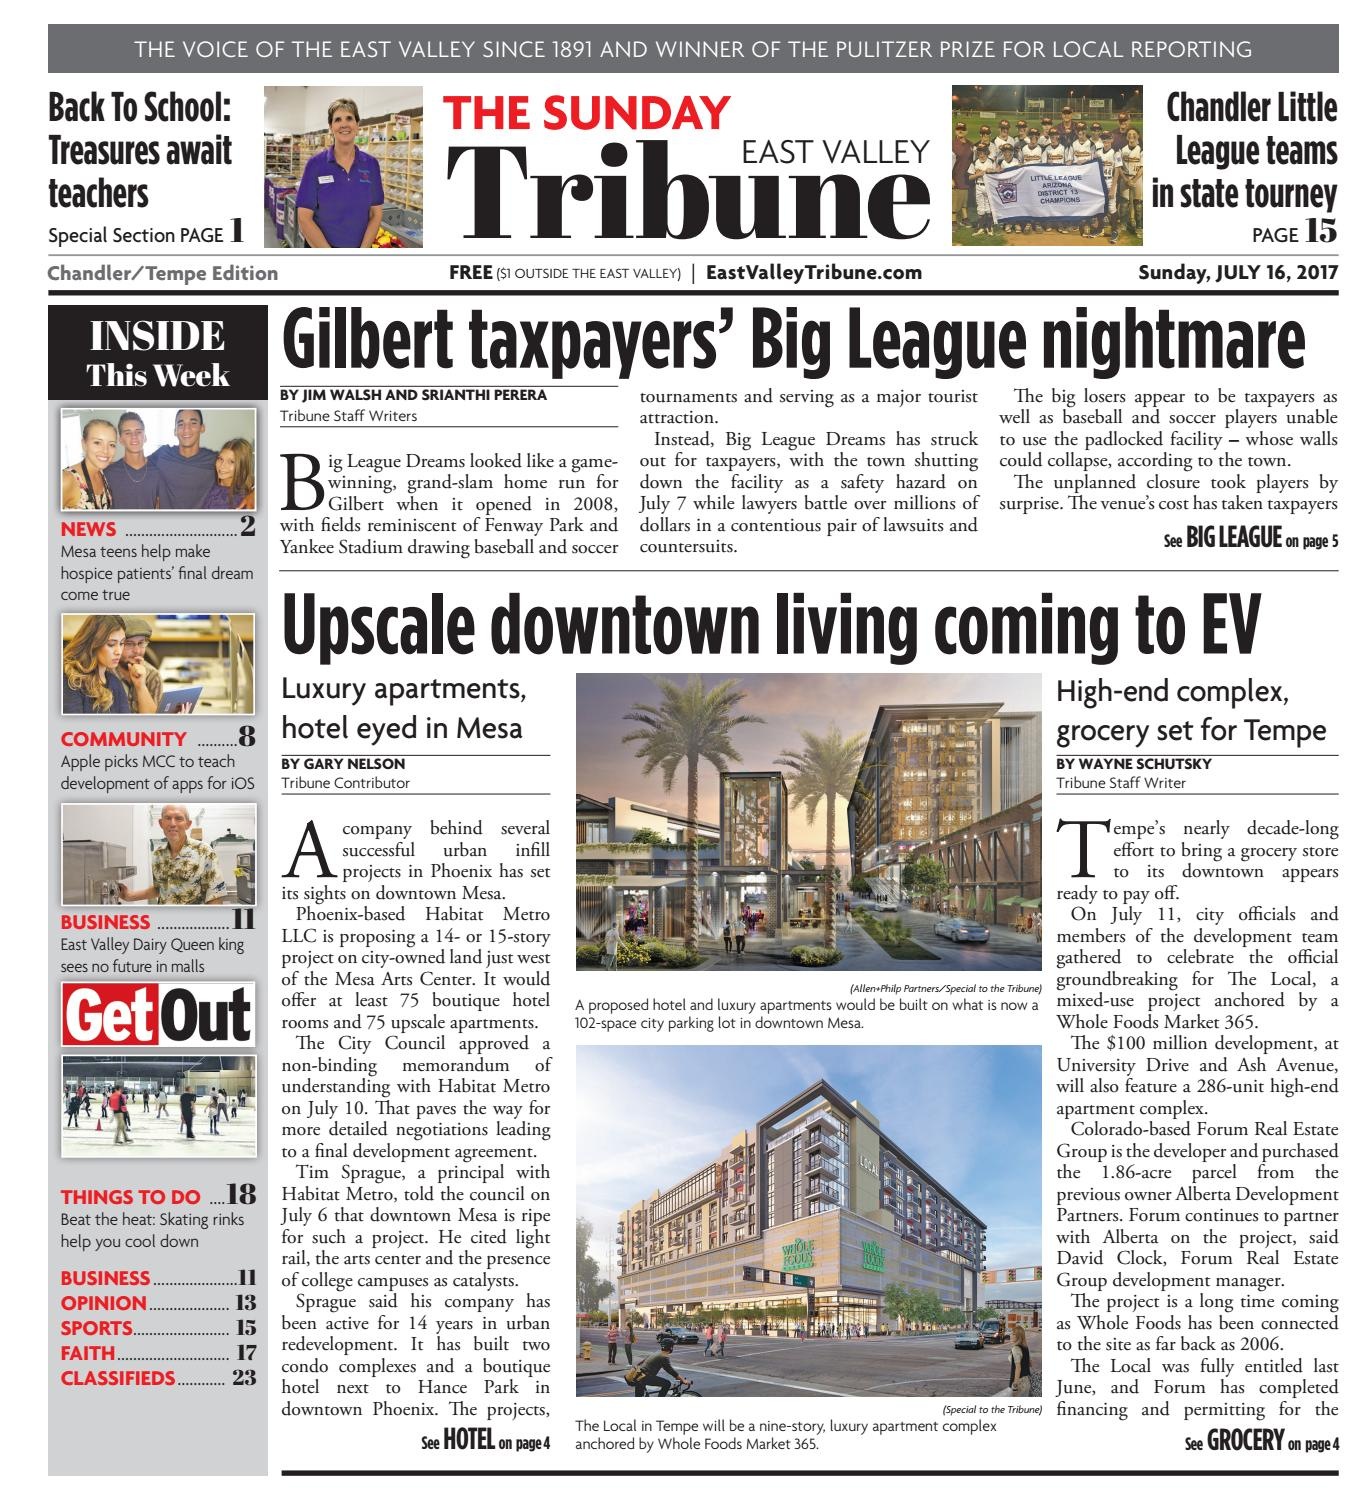 East Valley Tribune Chandler Tempe Edition July 16 2017 by